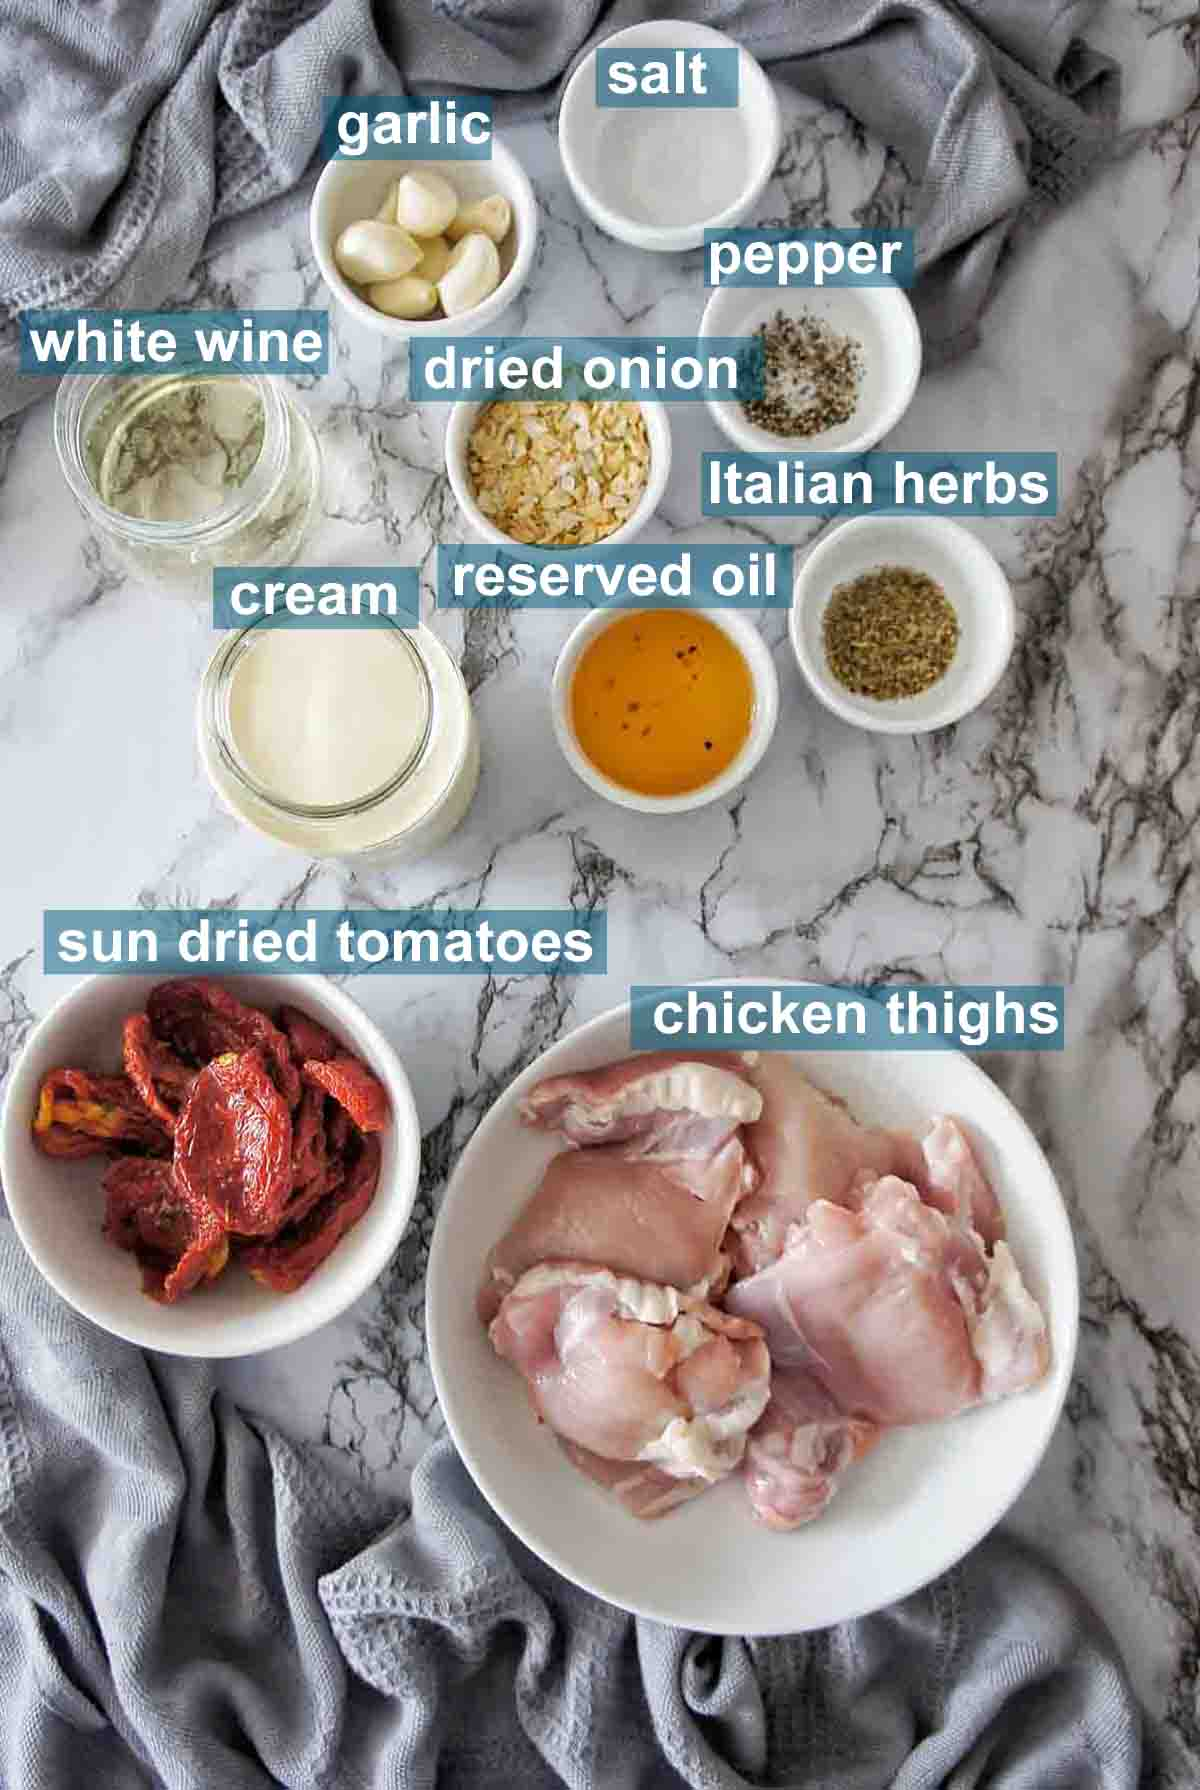 Ingredients for creamy garlic chicken thighs with text labels